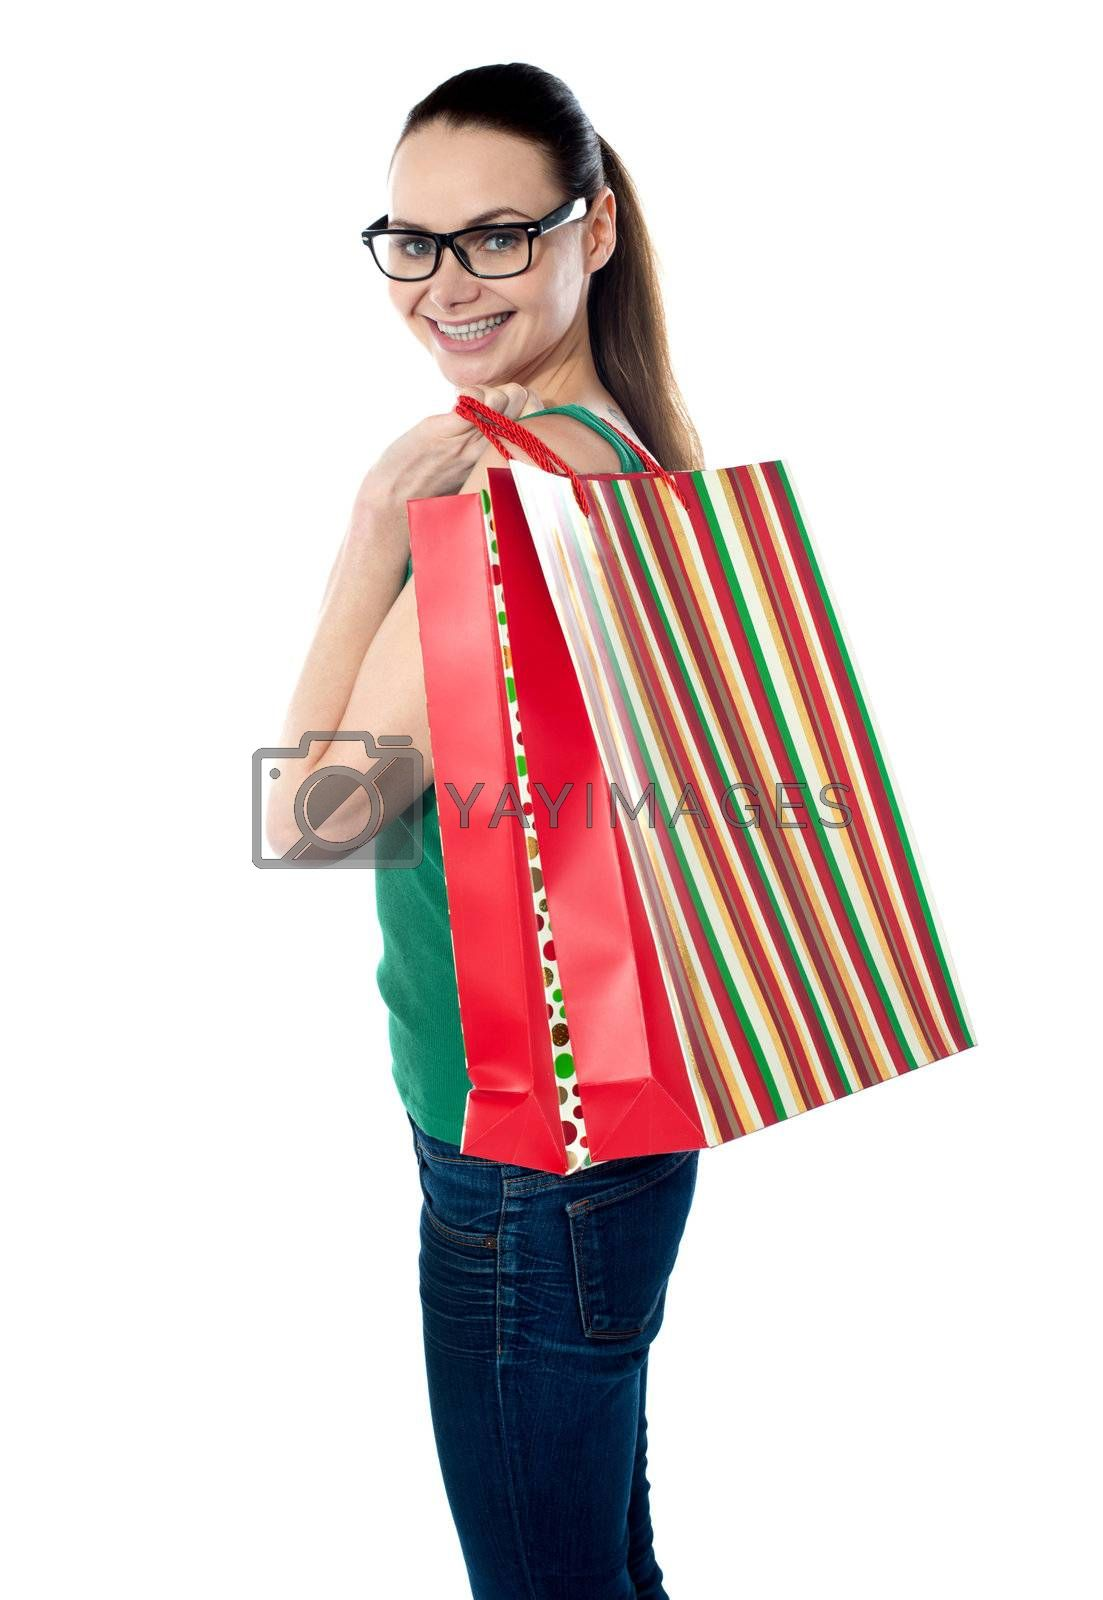 Side view of woman holding shopping bags against white background